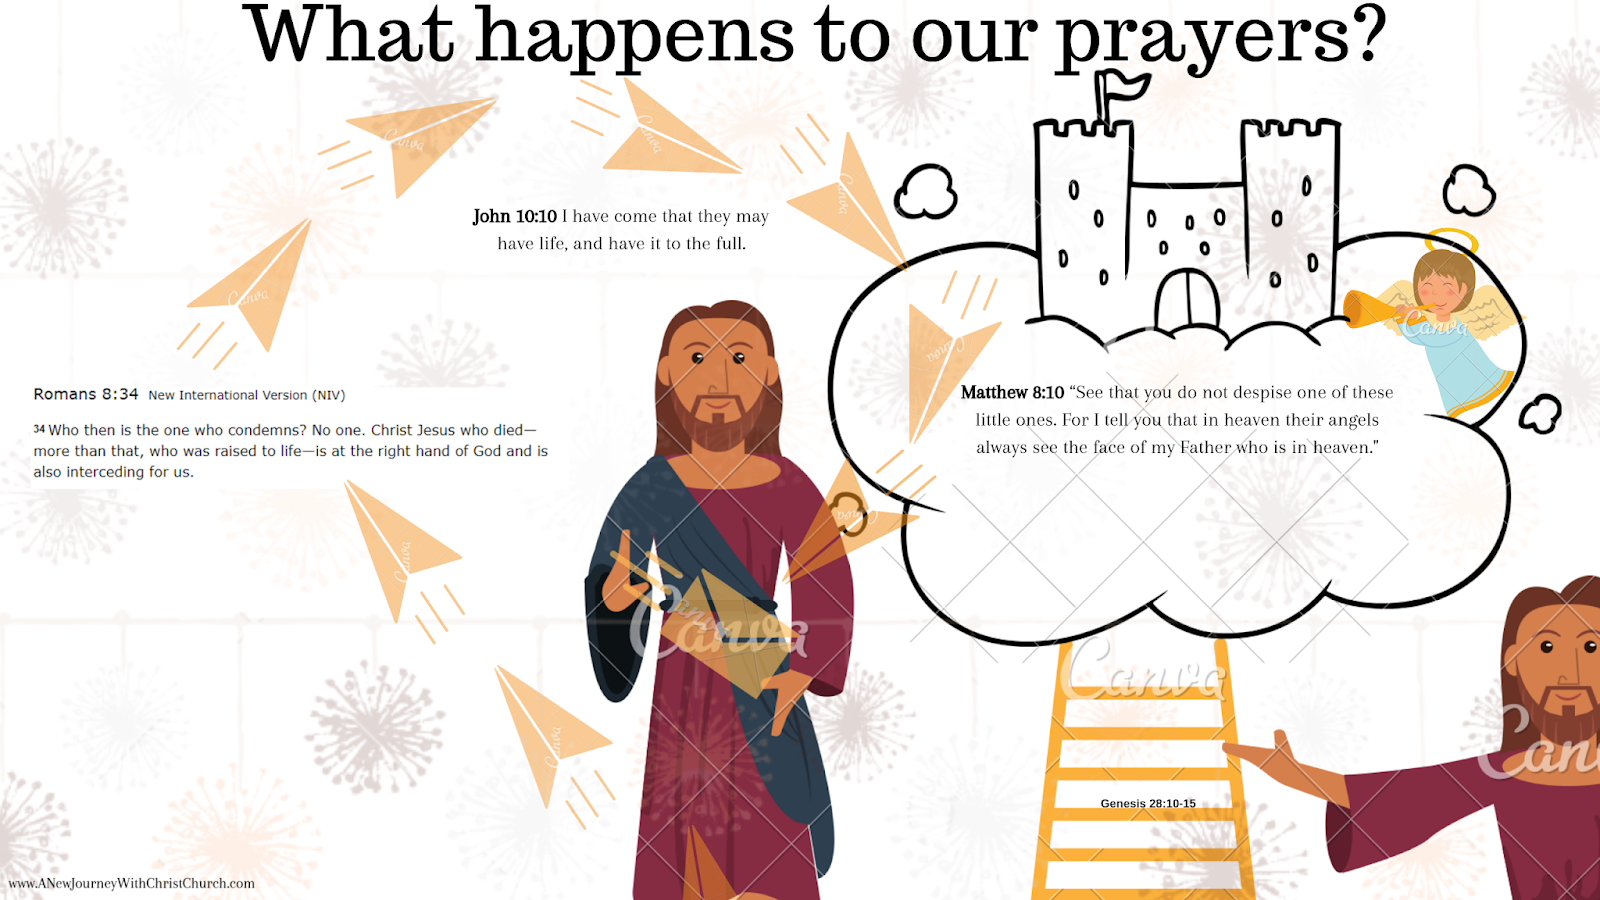 What happens to our prayers?